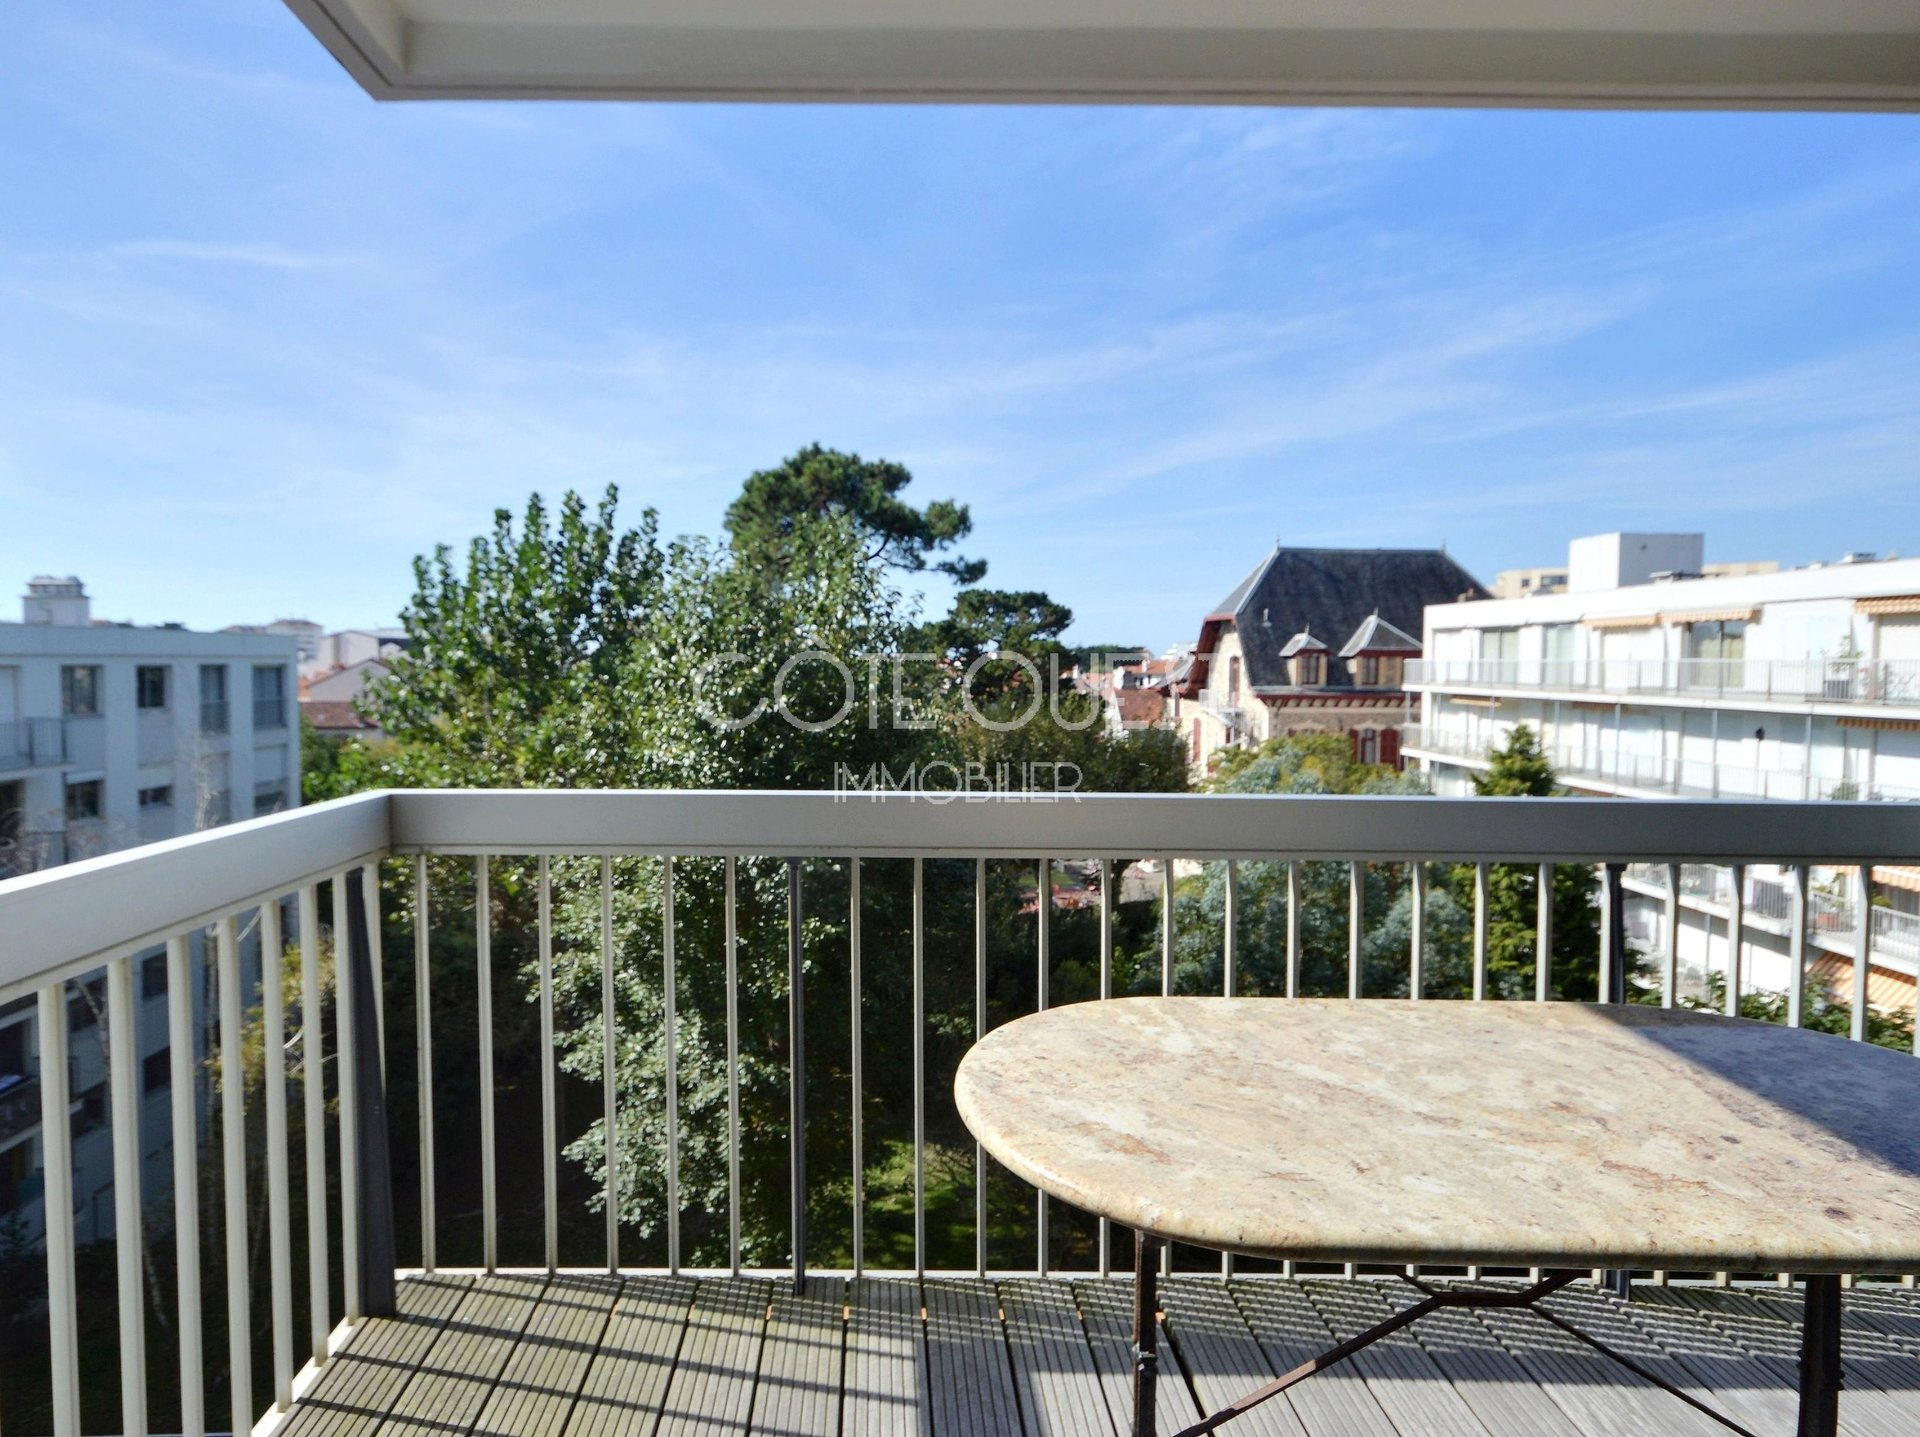 BIARRITZ, SAINT CHARLES NEIGHBOURHOOD. A 2-BED APARTMENT WITH TERRACES AND ENJOYING AN OPEN VIEW